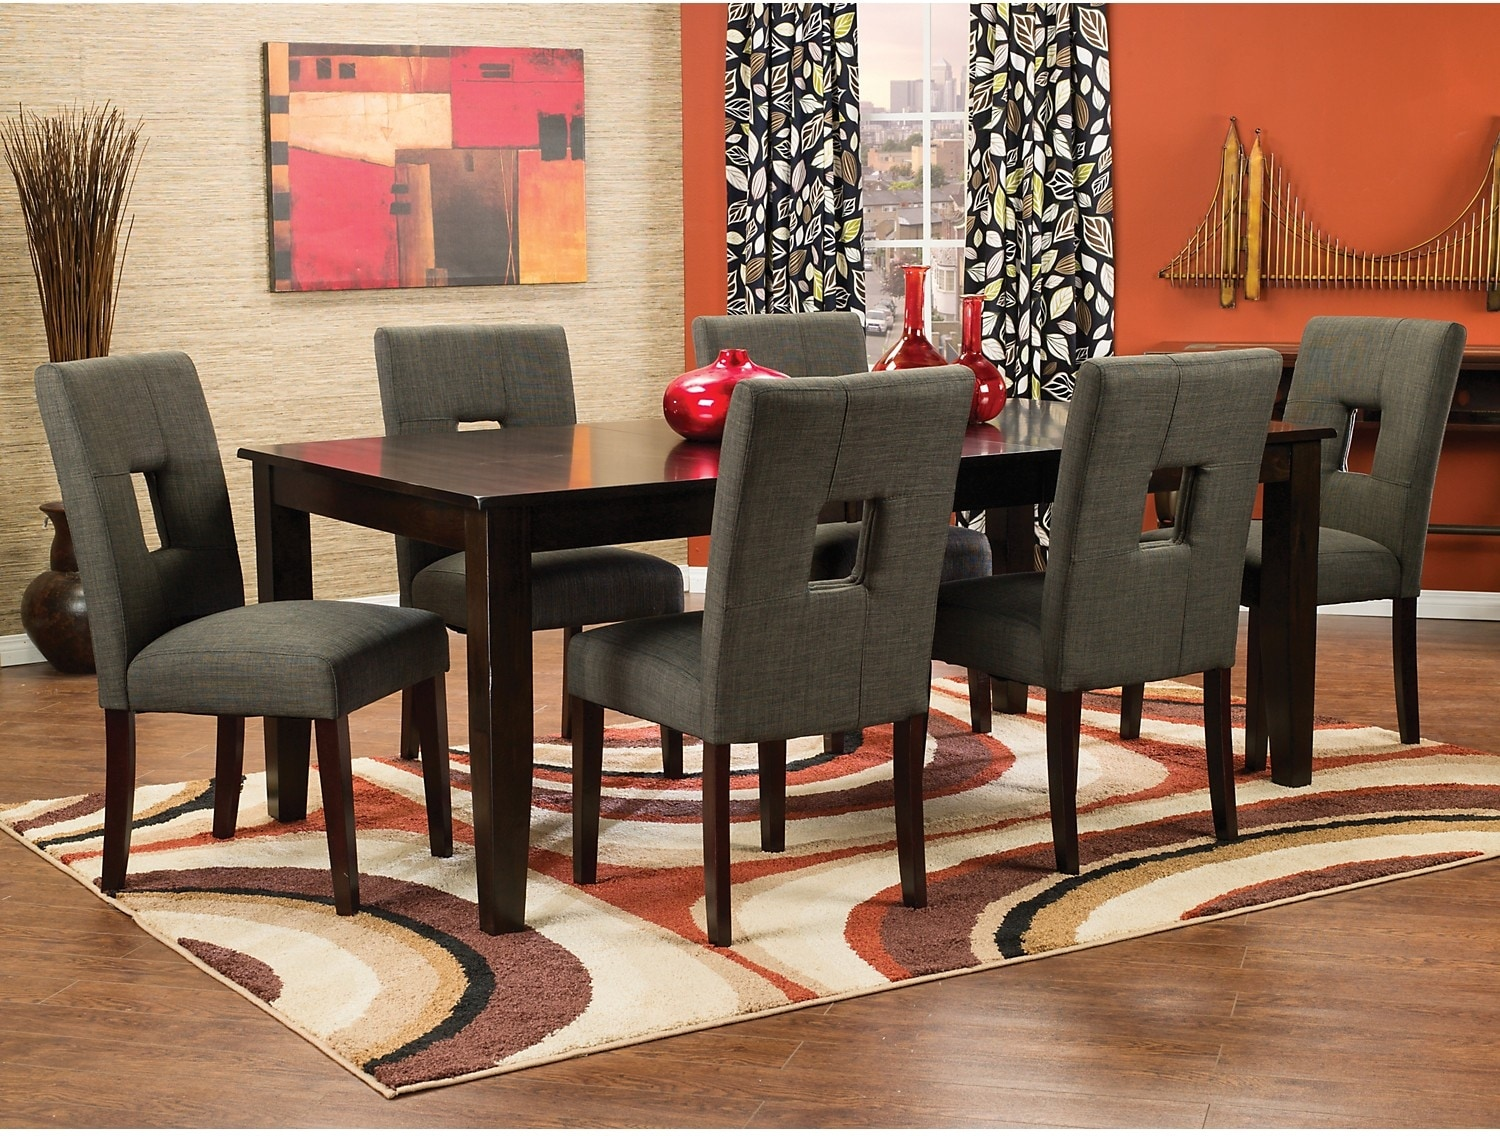 Dining Room Furniture - Dakota 7-Piece Dining Package with Grey Chairs